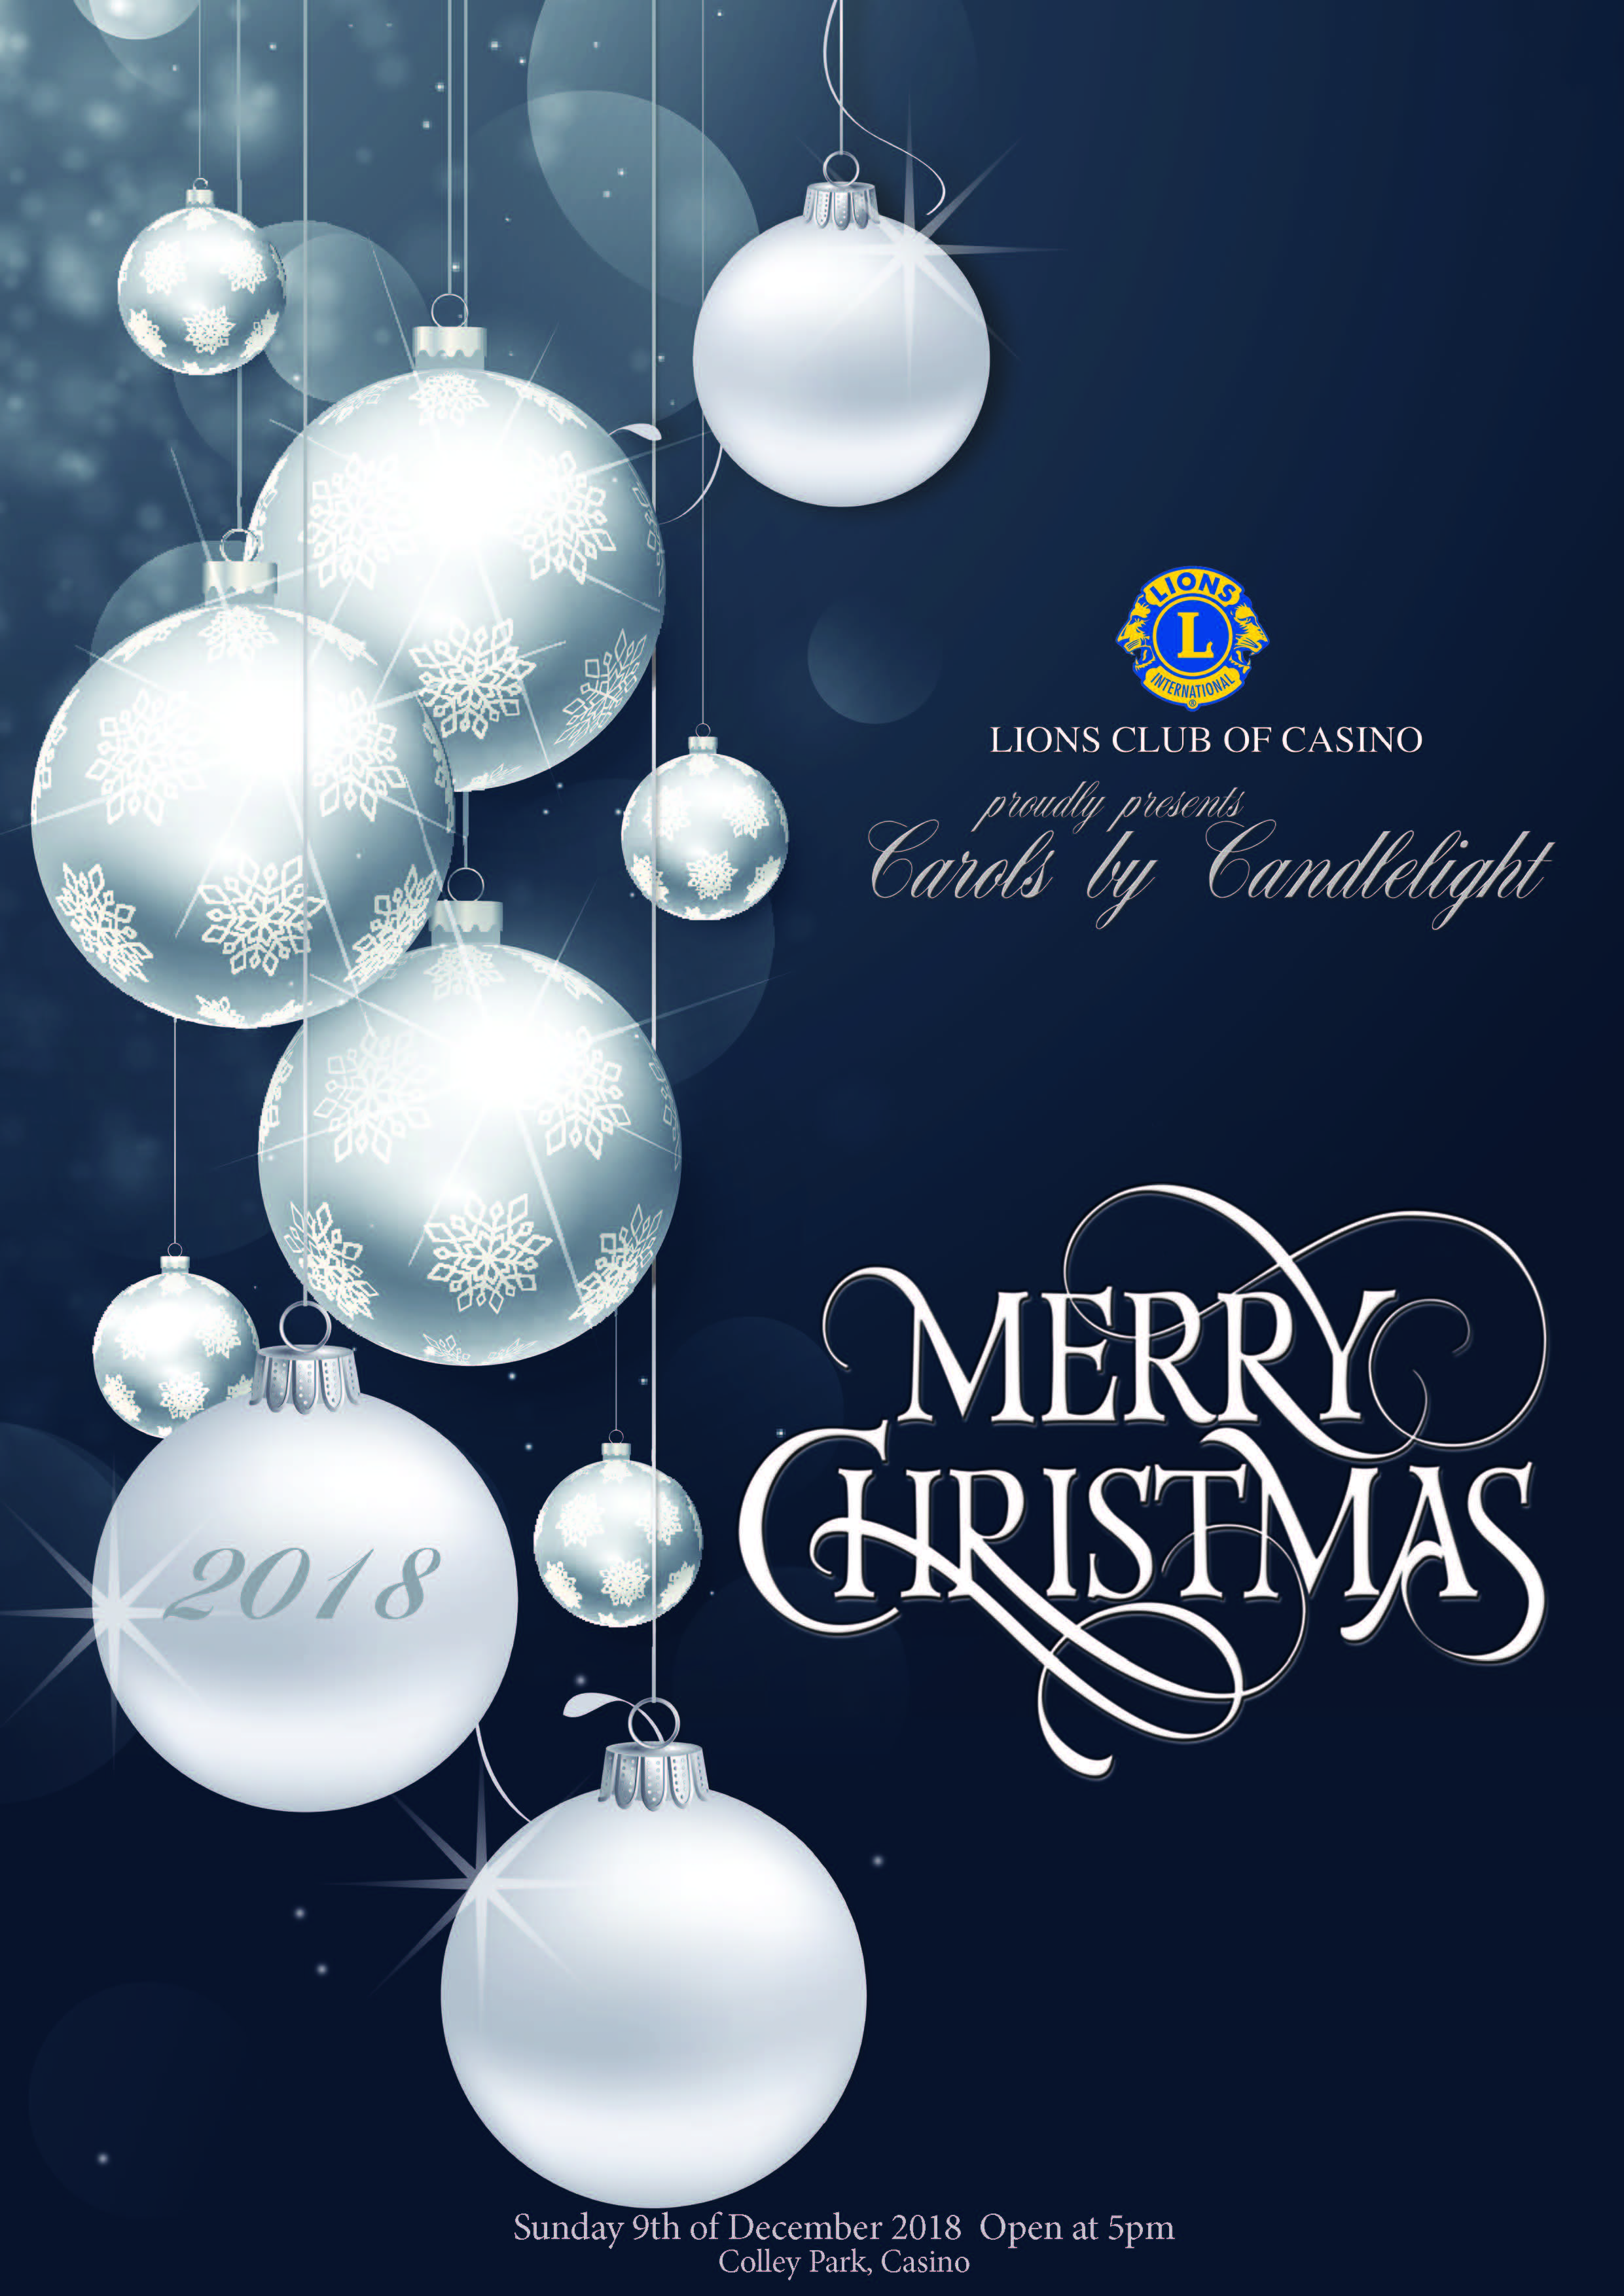 HCarols by Candlelight Casino, Heartland Magazine Casino NSW Printing, Lions Club Casino NSW, NSW News and Events